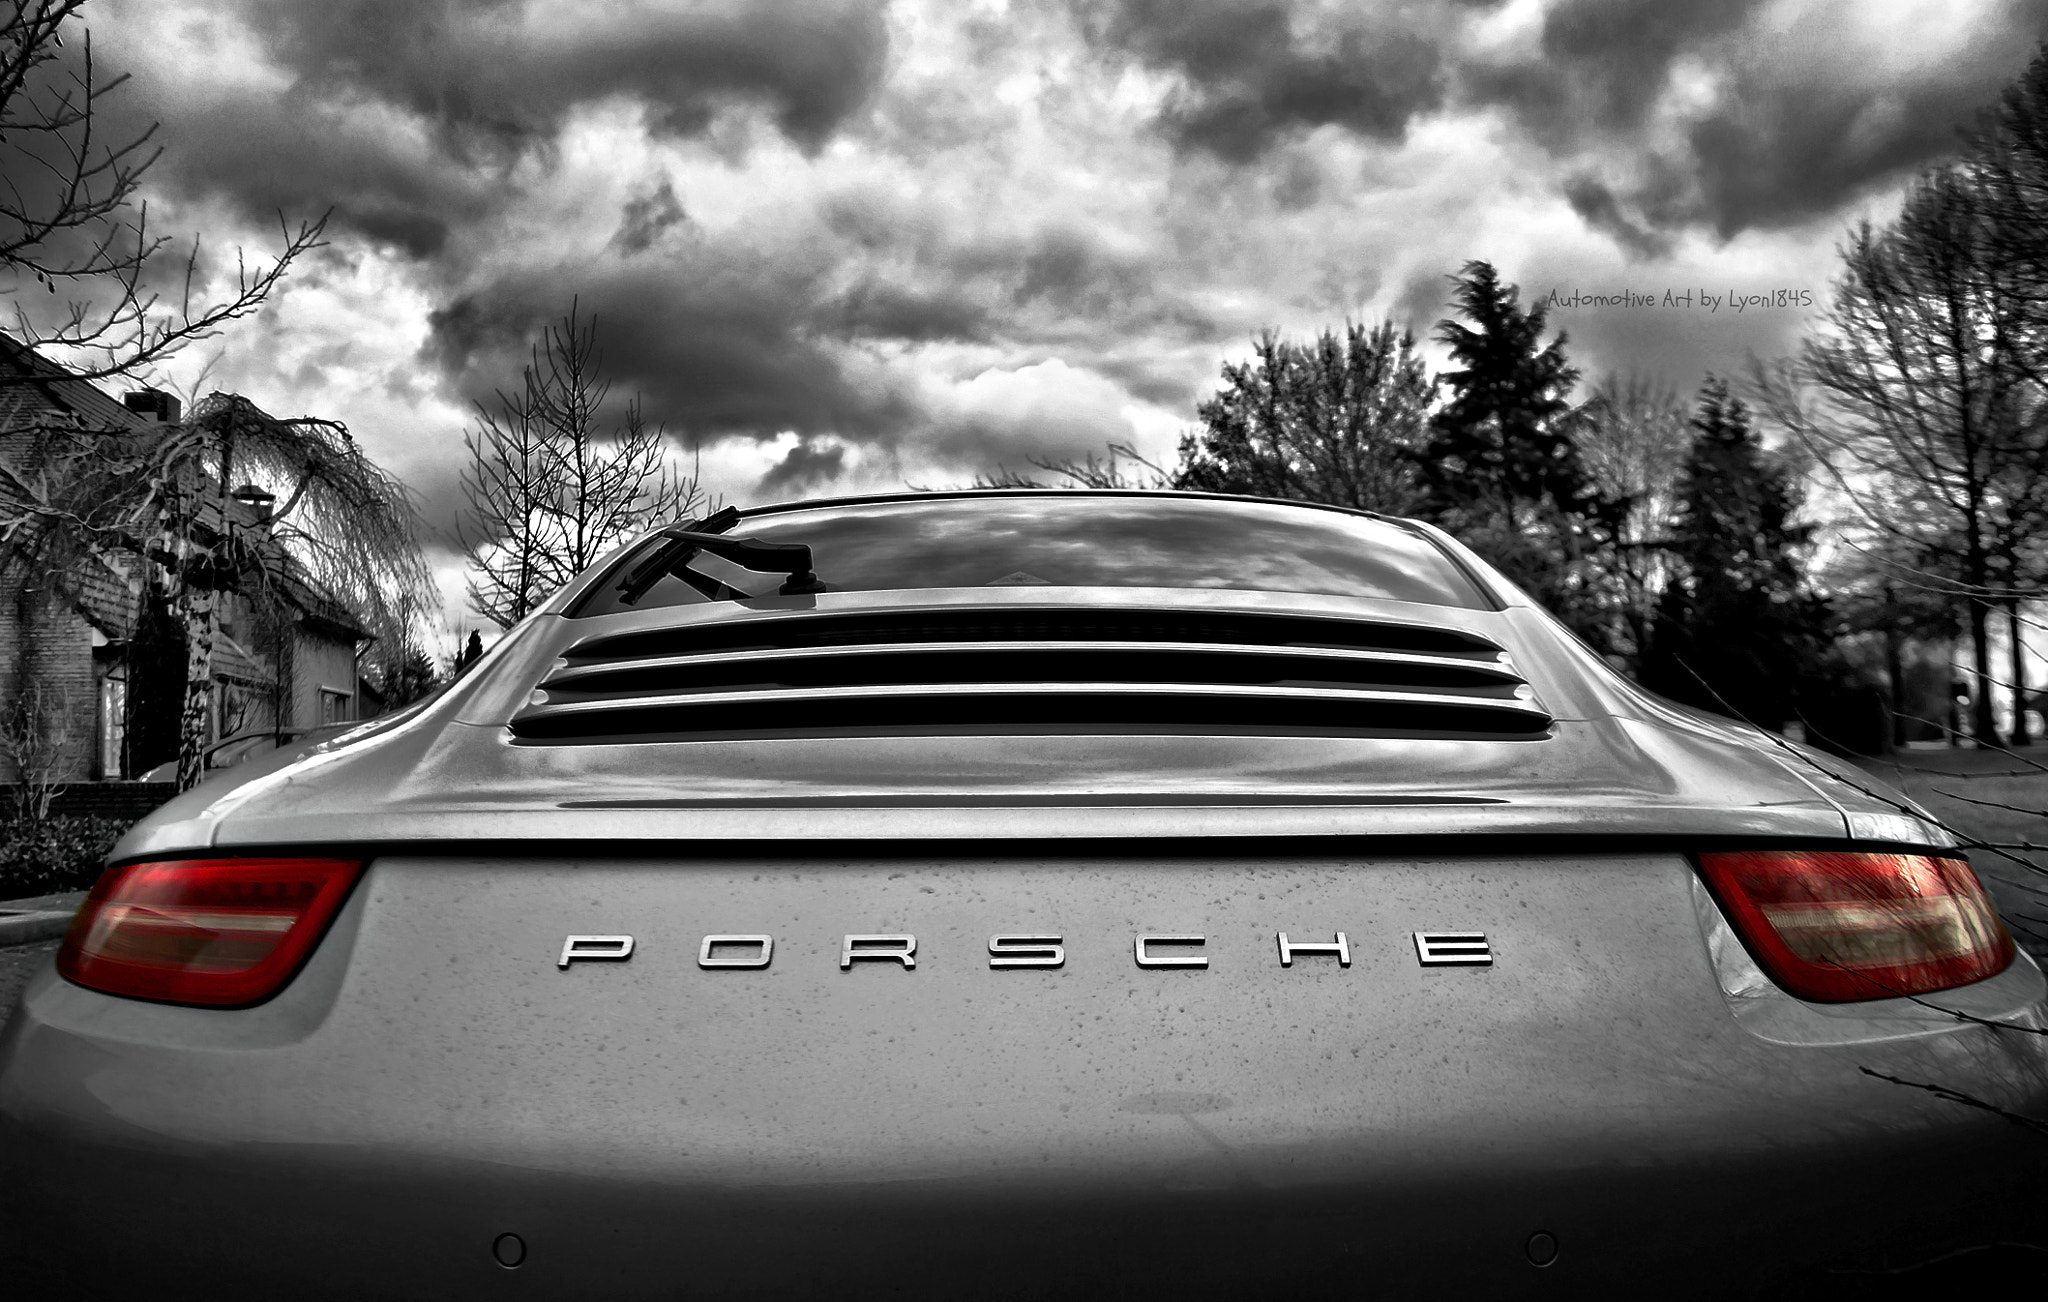 Photograph Dark clouds above a Carrera by lyon1845 on 500px